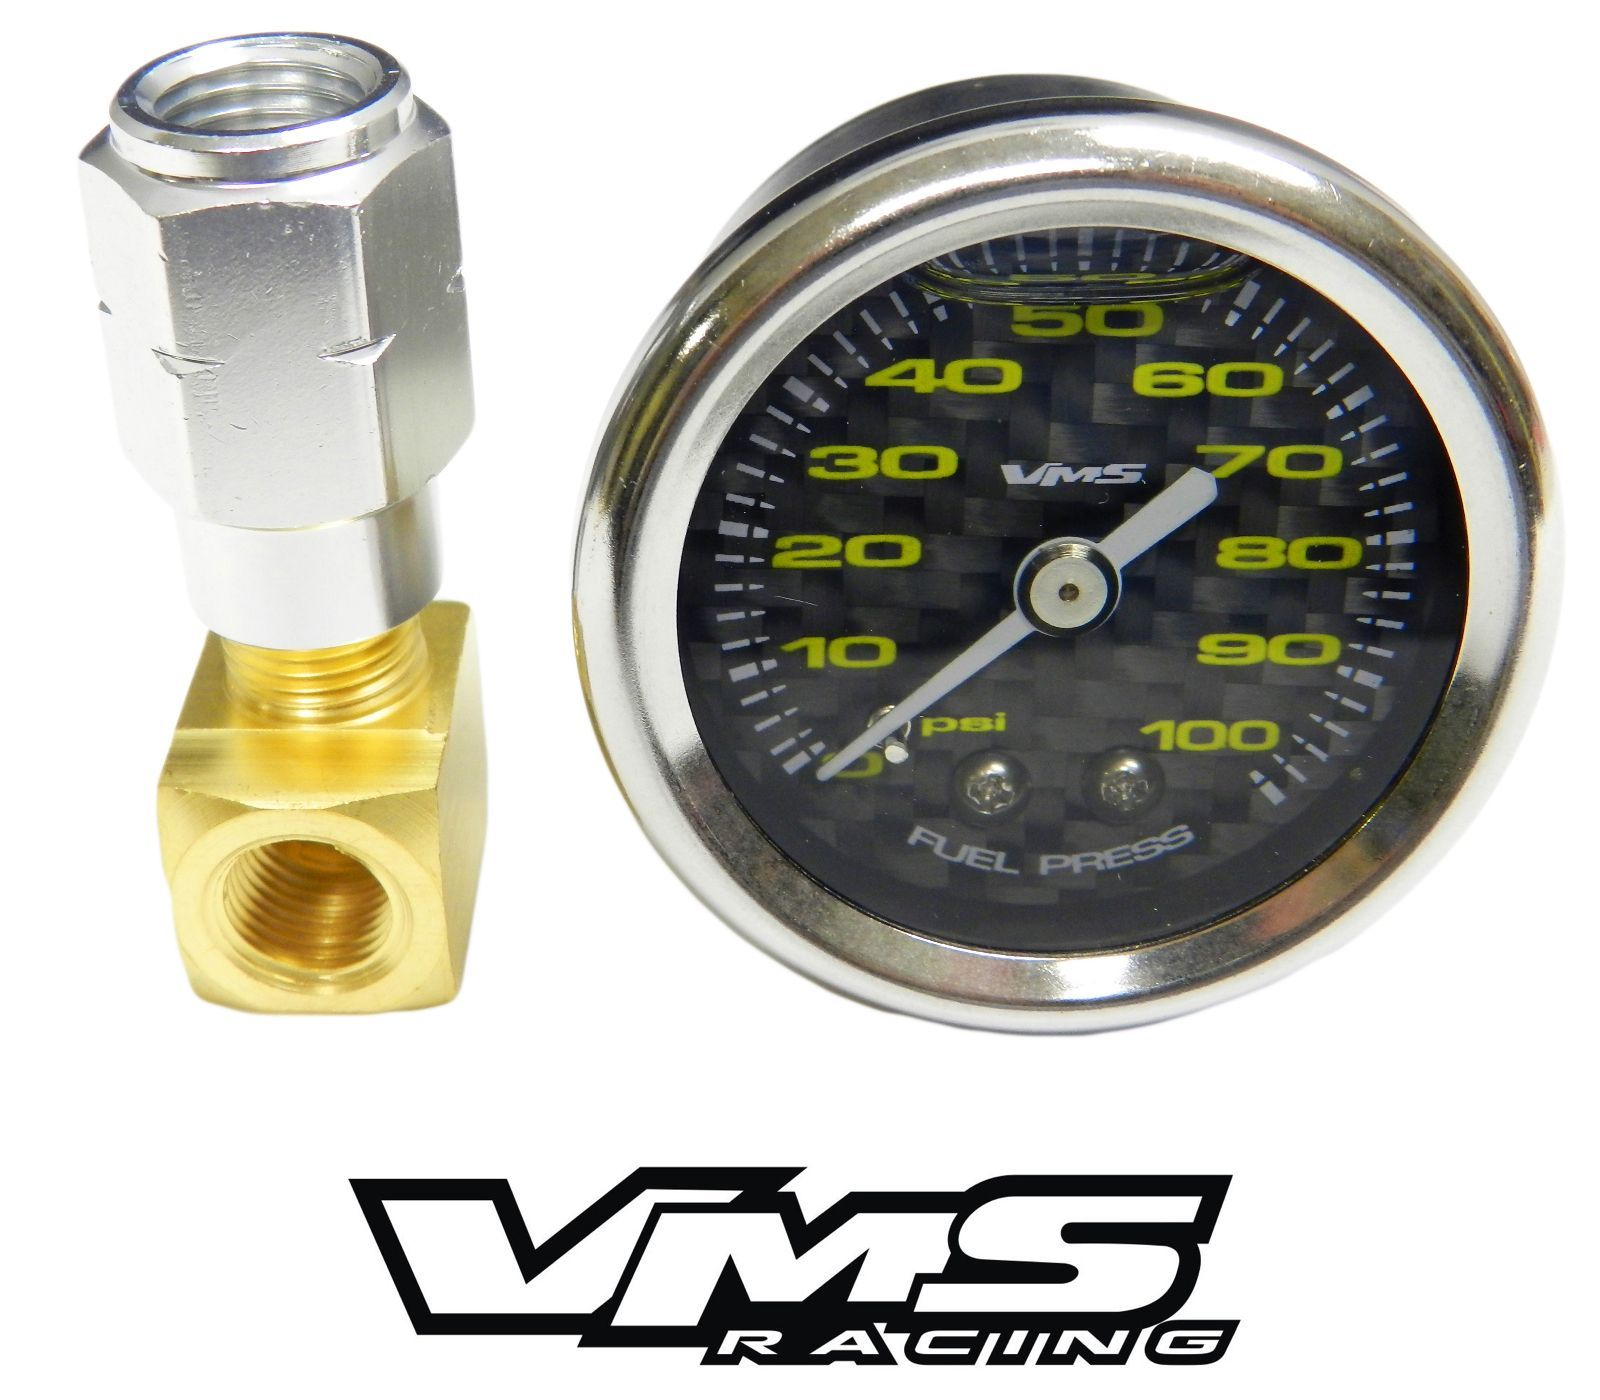 "VMS Camaro Corvette 1 1/2"" 100 psi Black Carbon w/Yellow Face Fuel Pressure Gauge Liquid Filled Adpater and Gauge"